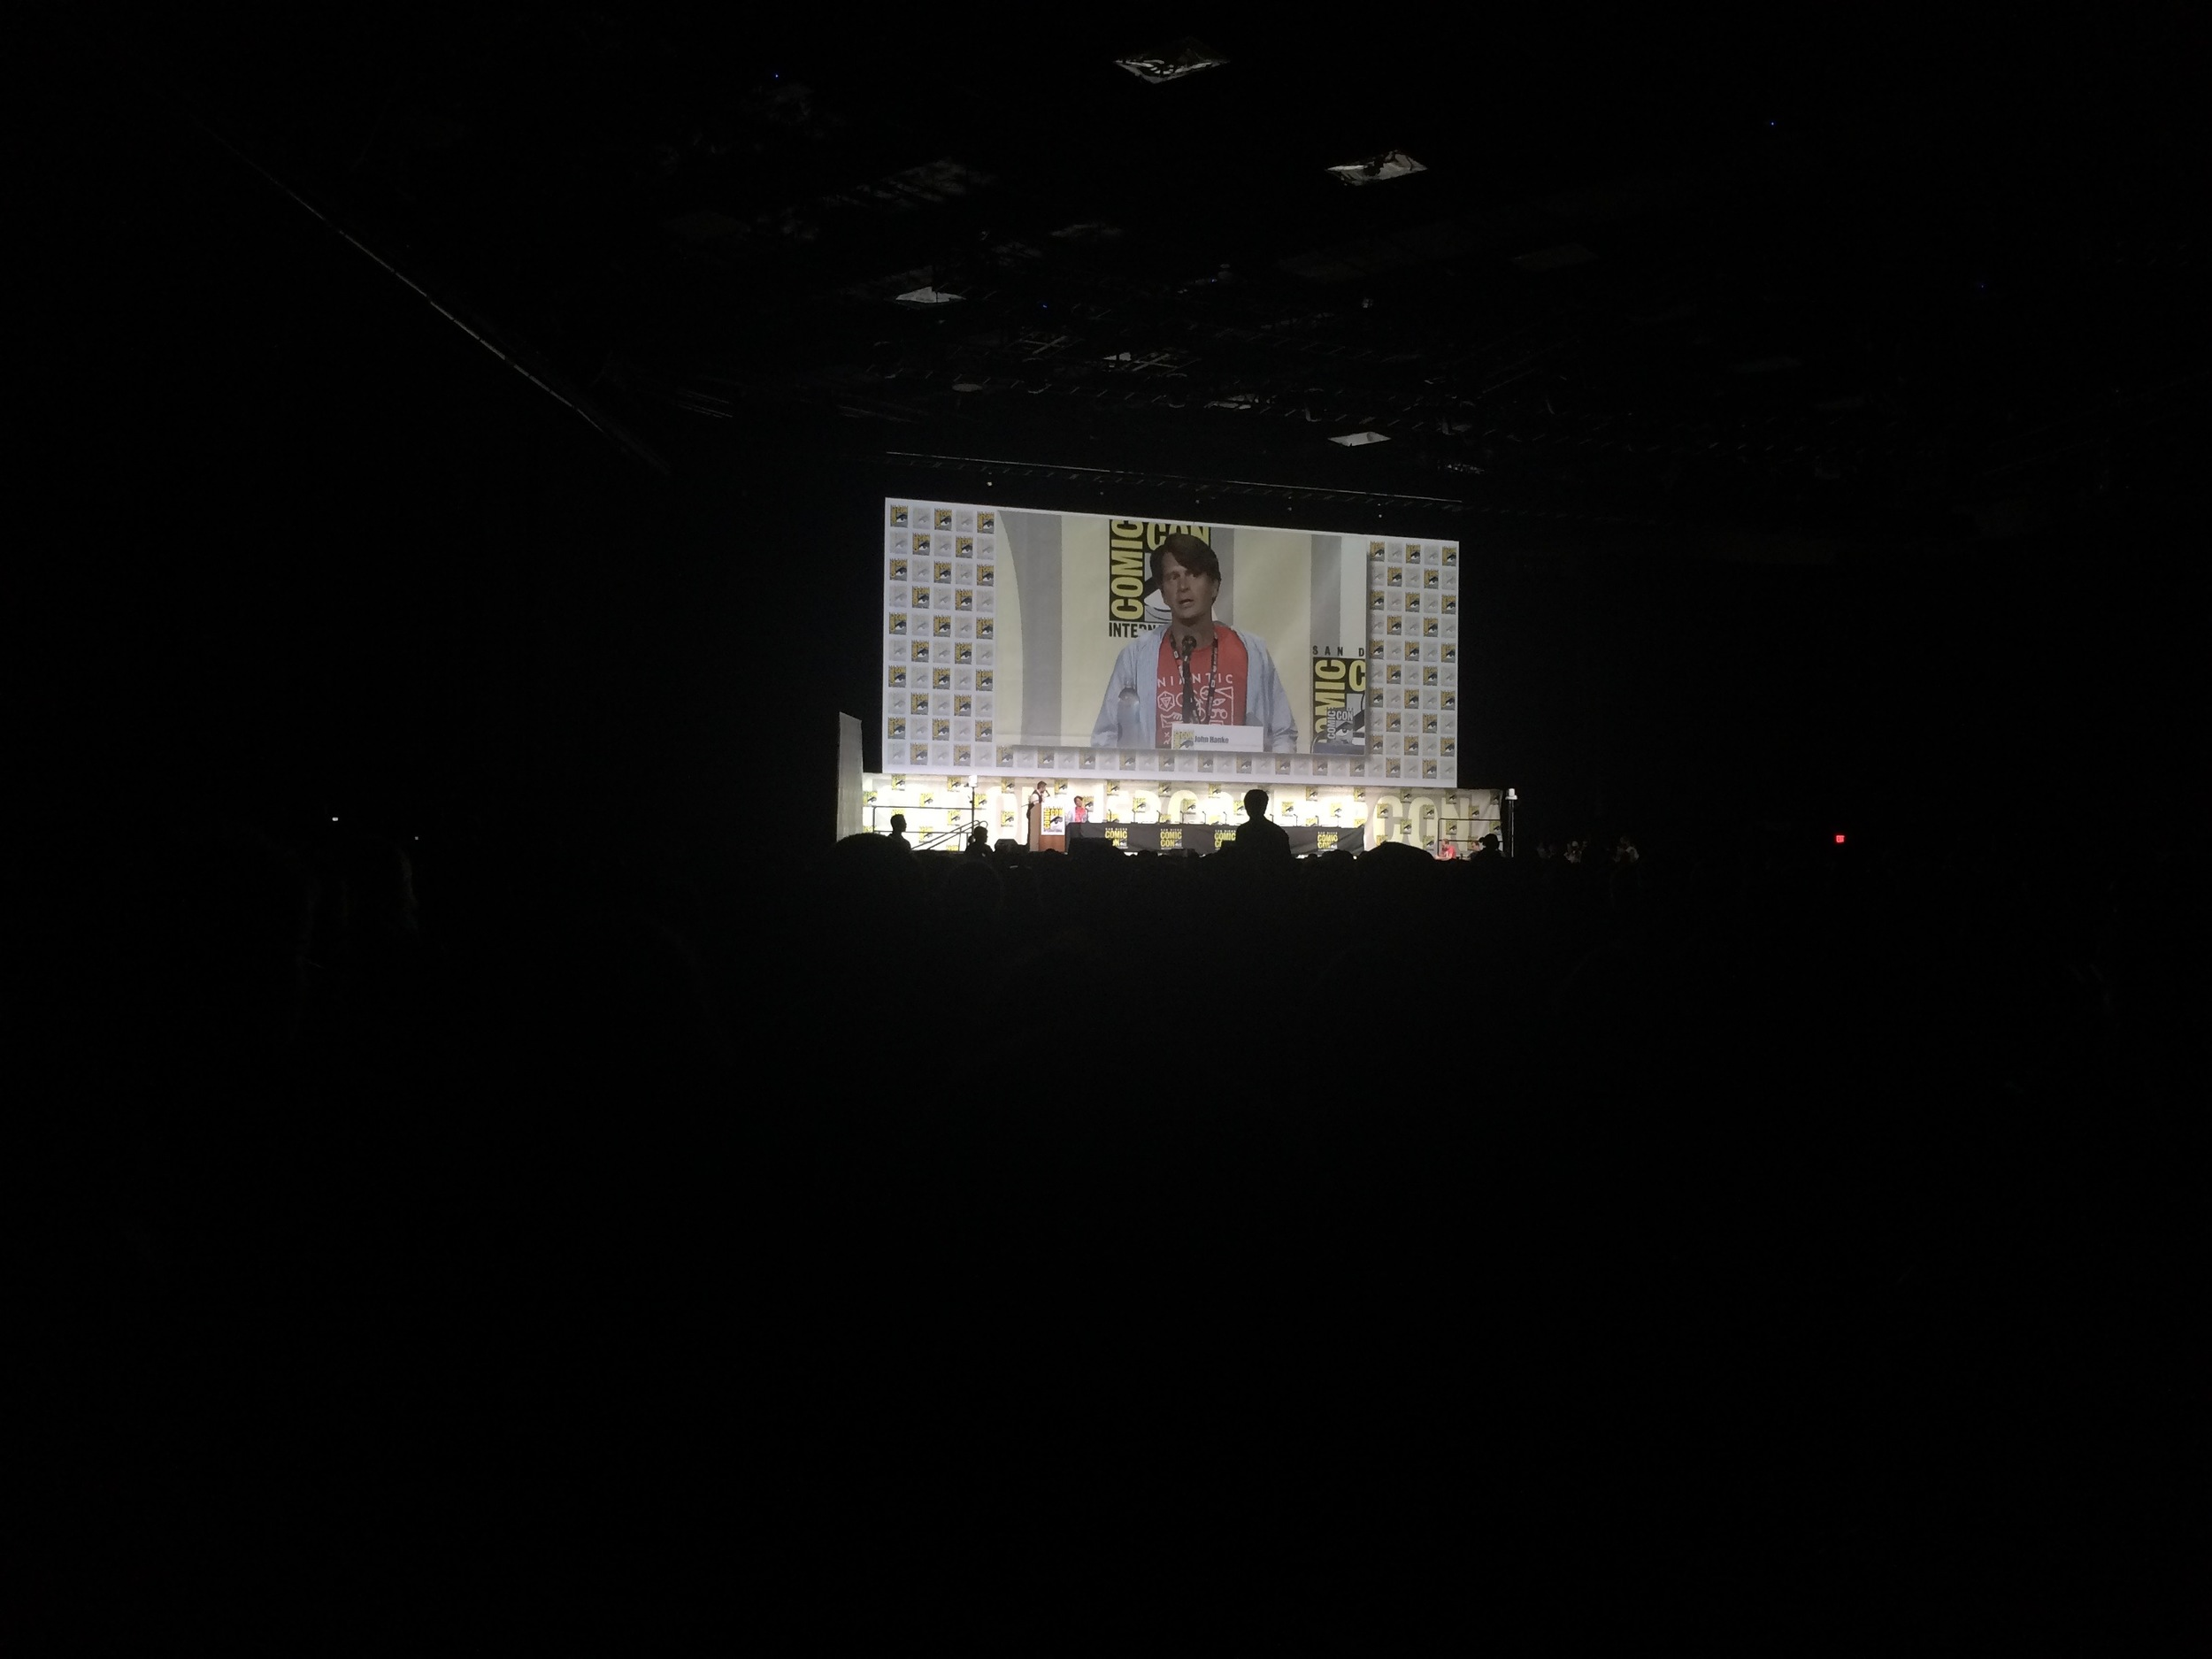 On Sunday, I waited in the long (and infamous) Hall H line to attend the panel on PokemonGo. It was hosted by Chris Hardwick and he interview the president of Niantic, John Hanke. All the information from that panel, if you are interested, is repeated in countless media outlets. I had a great time, planted somewhere in the middle of Hall H. I learned that I am on the same PokemonGo team as the president. That's all that really matters. (Go Team Instinct!)